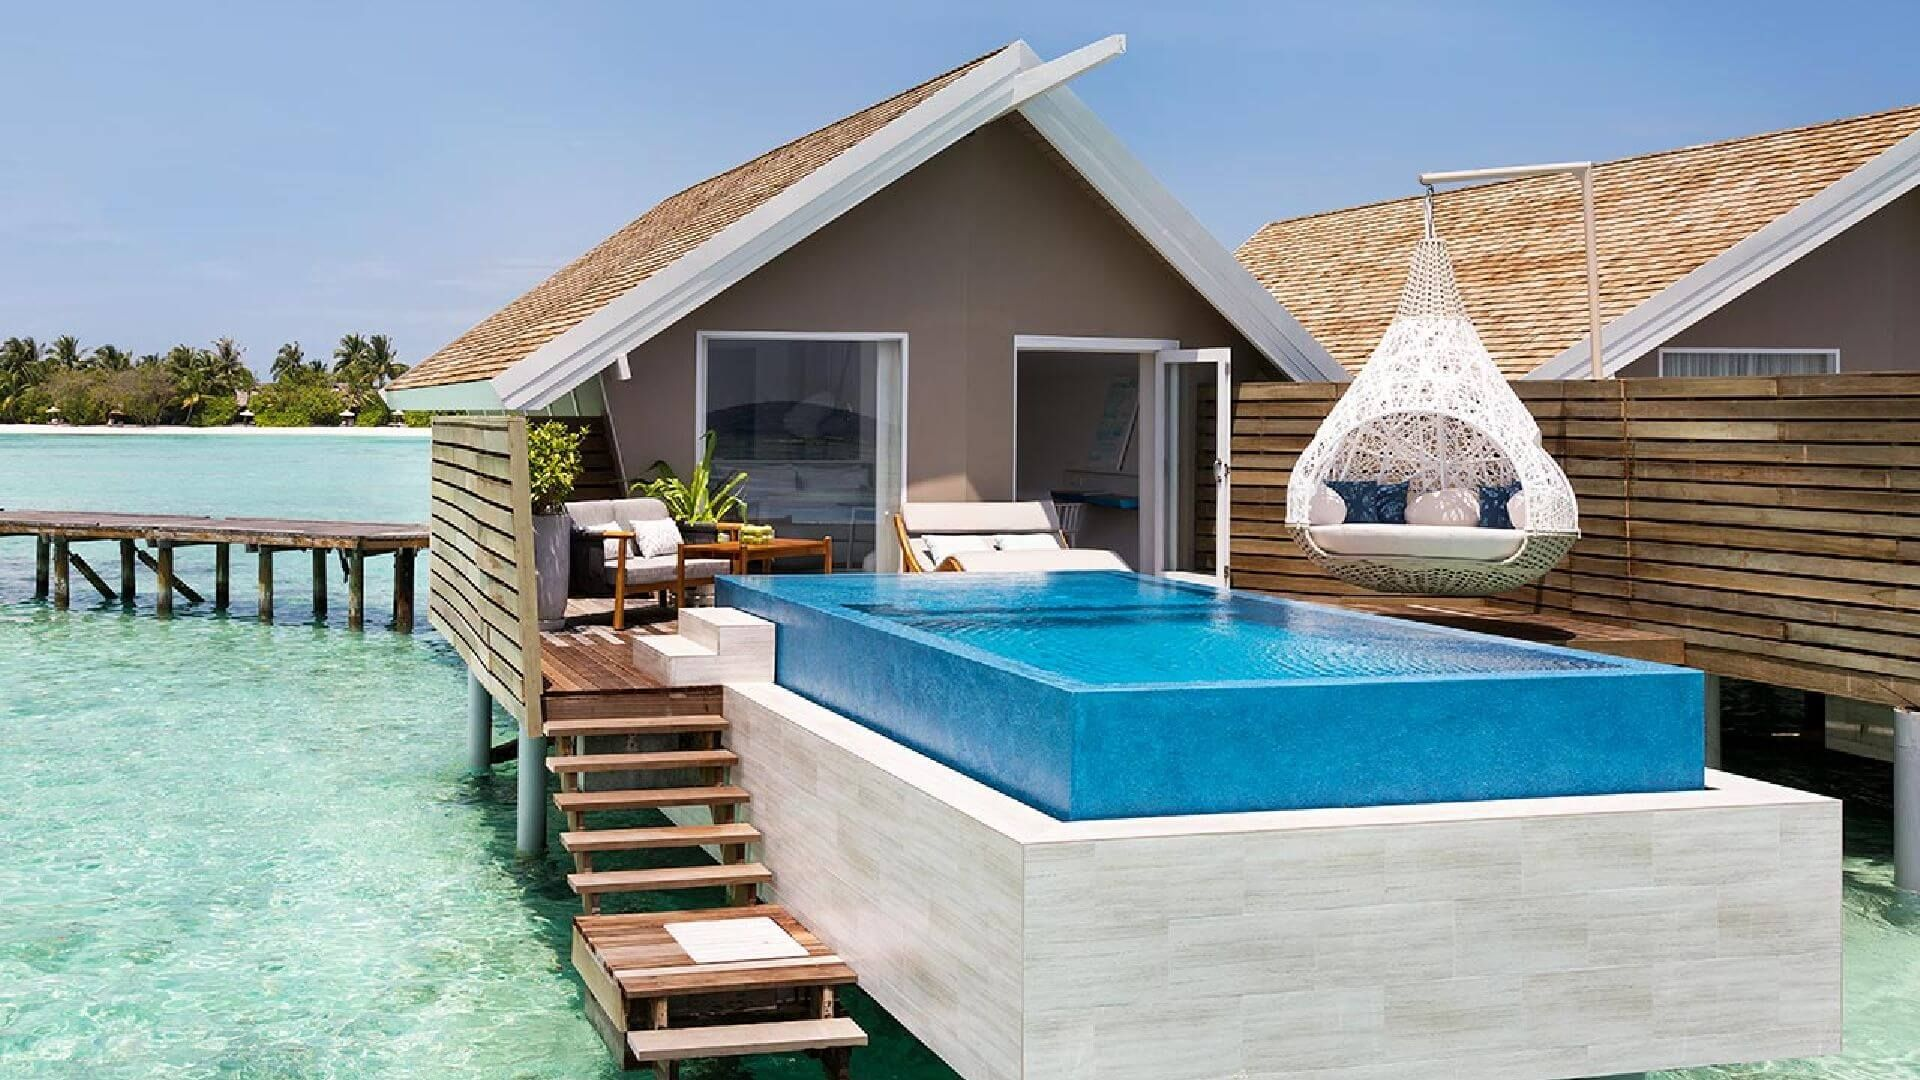 #LUX South Ari Atoll #DhidhoofinolhuIsland #Asia #Maldives #Hotels #travel #travelblogger #travelgram #travelguide #travels #travelling #travelblog #traveladdict #traveladikkt #beautifuldestinations #bucketlist #luxury #luxurylifestyle #luxurytravel #luxurydestinations #lifestyle #lifestyleblogger #beautifulplaces #beautifulplace #beautiful #beautifuldestination